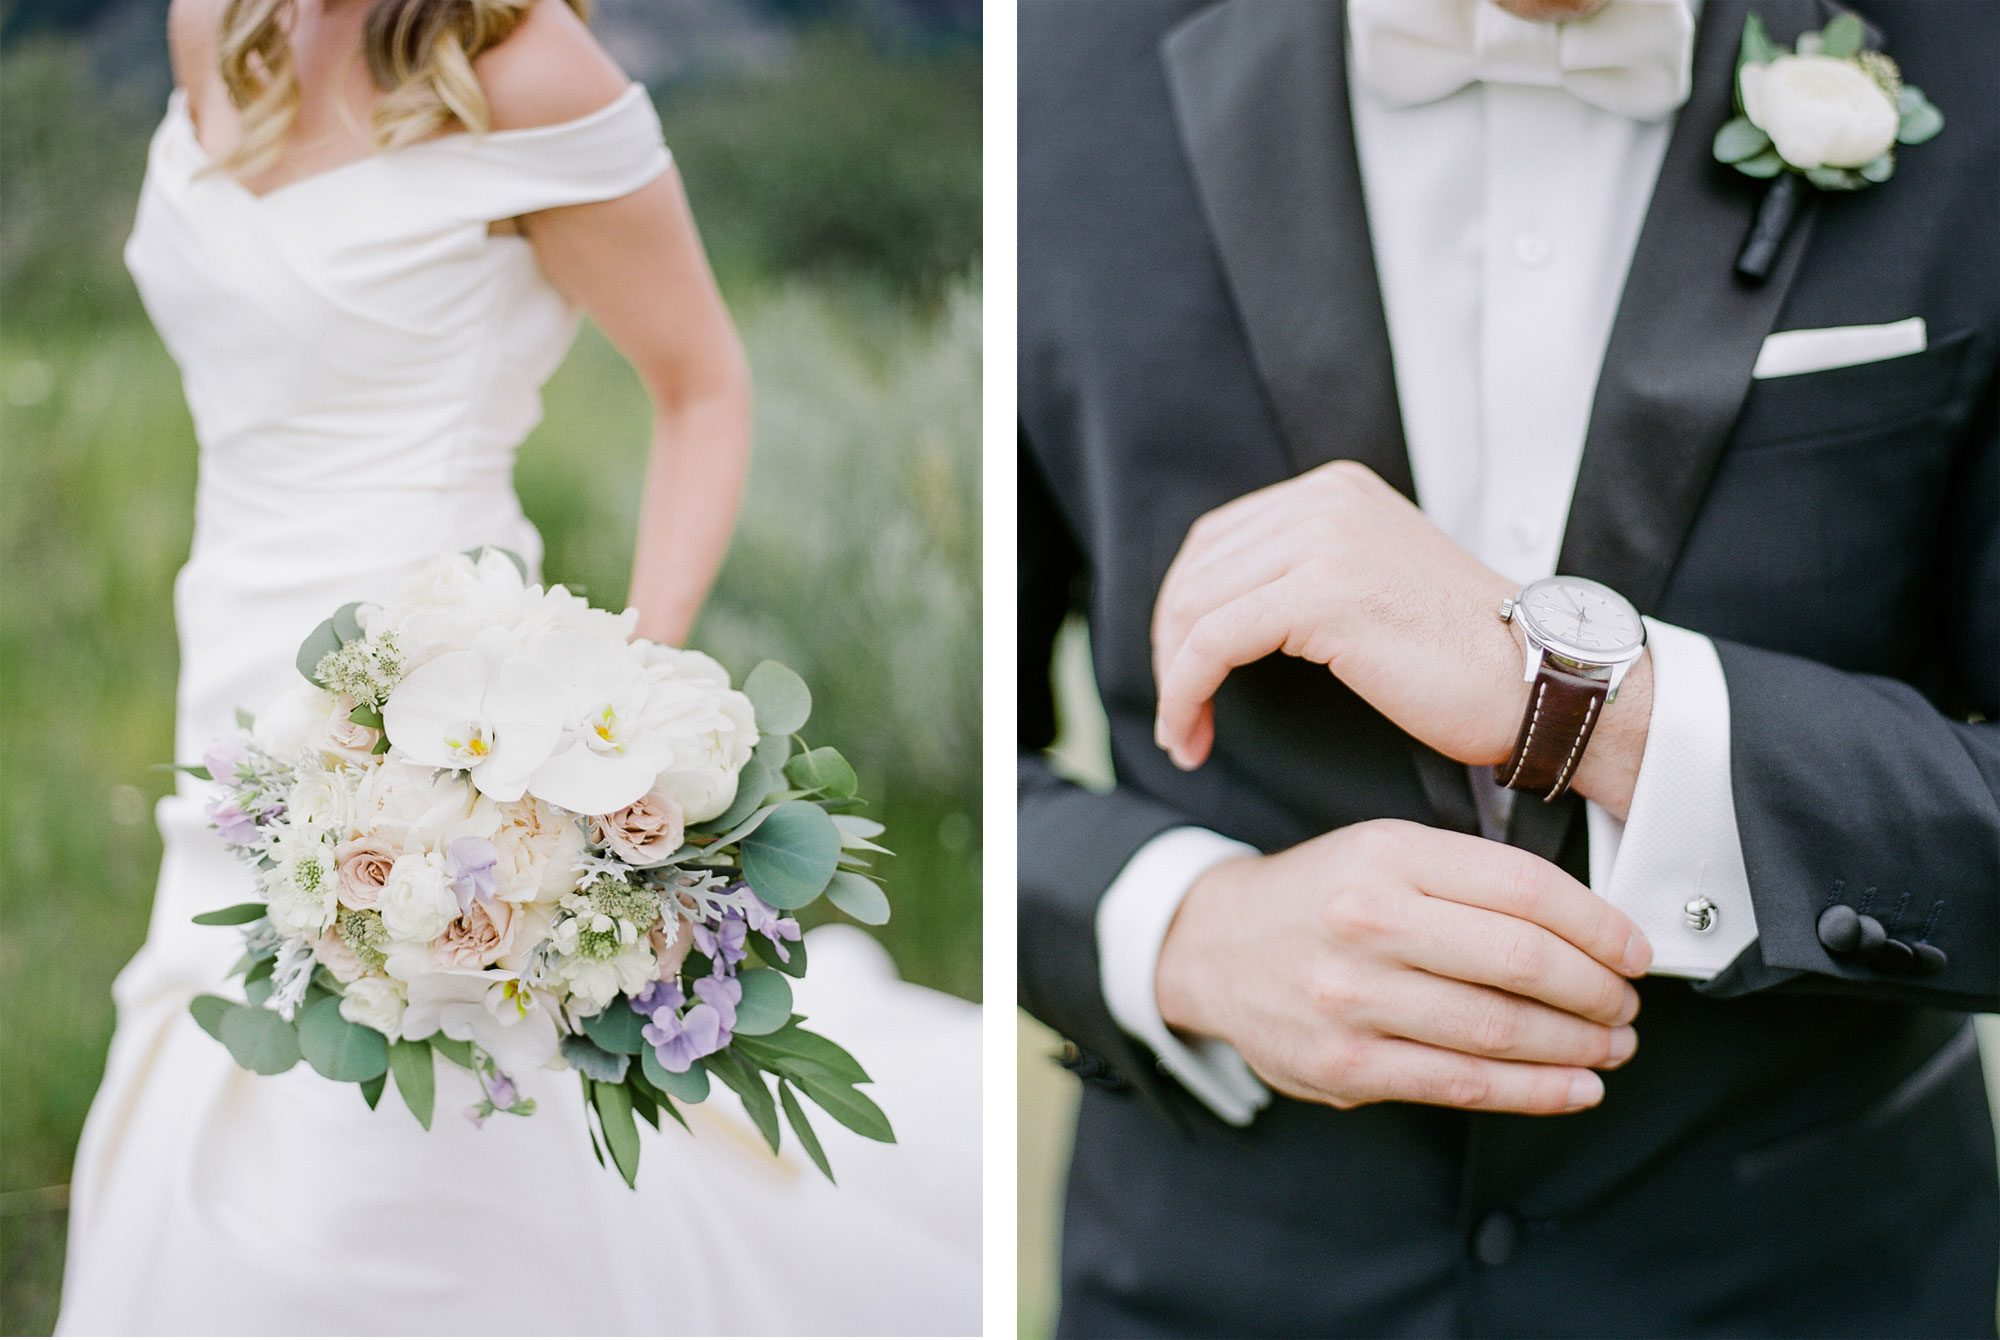 Bride + Groom - A Black Tie Rocky Mountain Destination Wedding